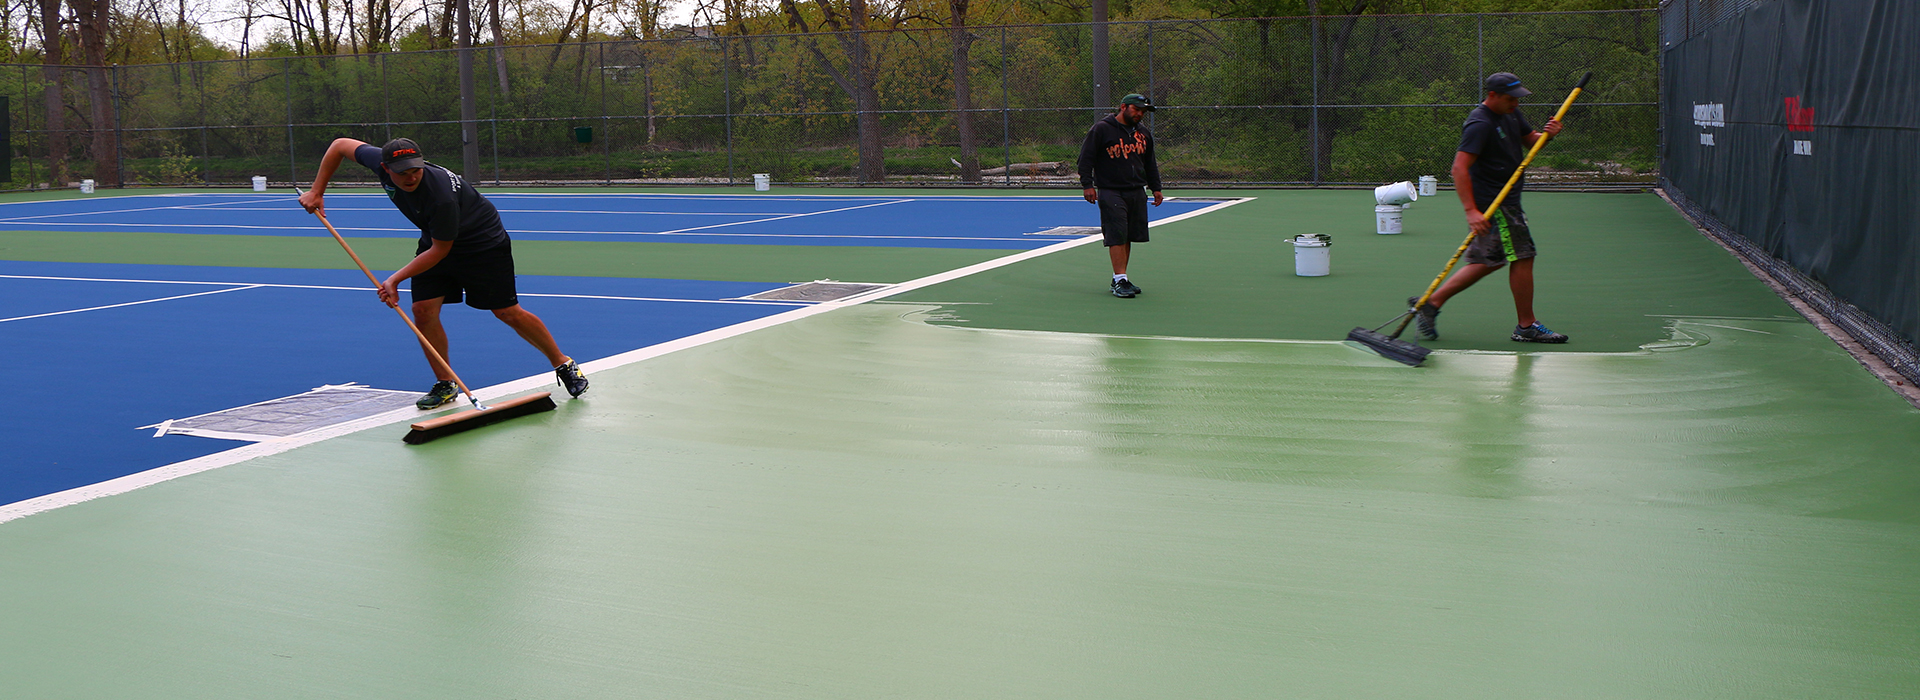 2016 Court Resurfacing